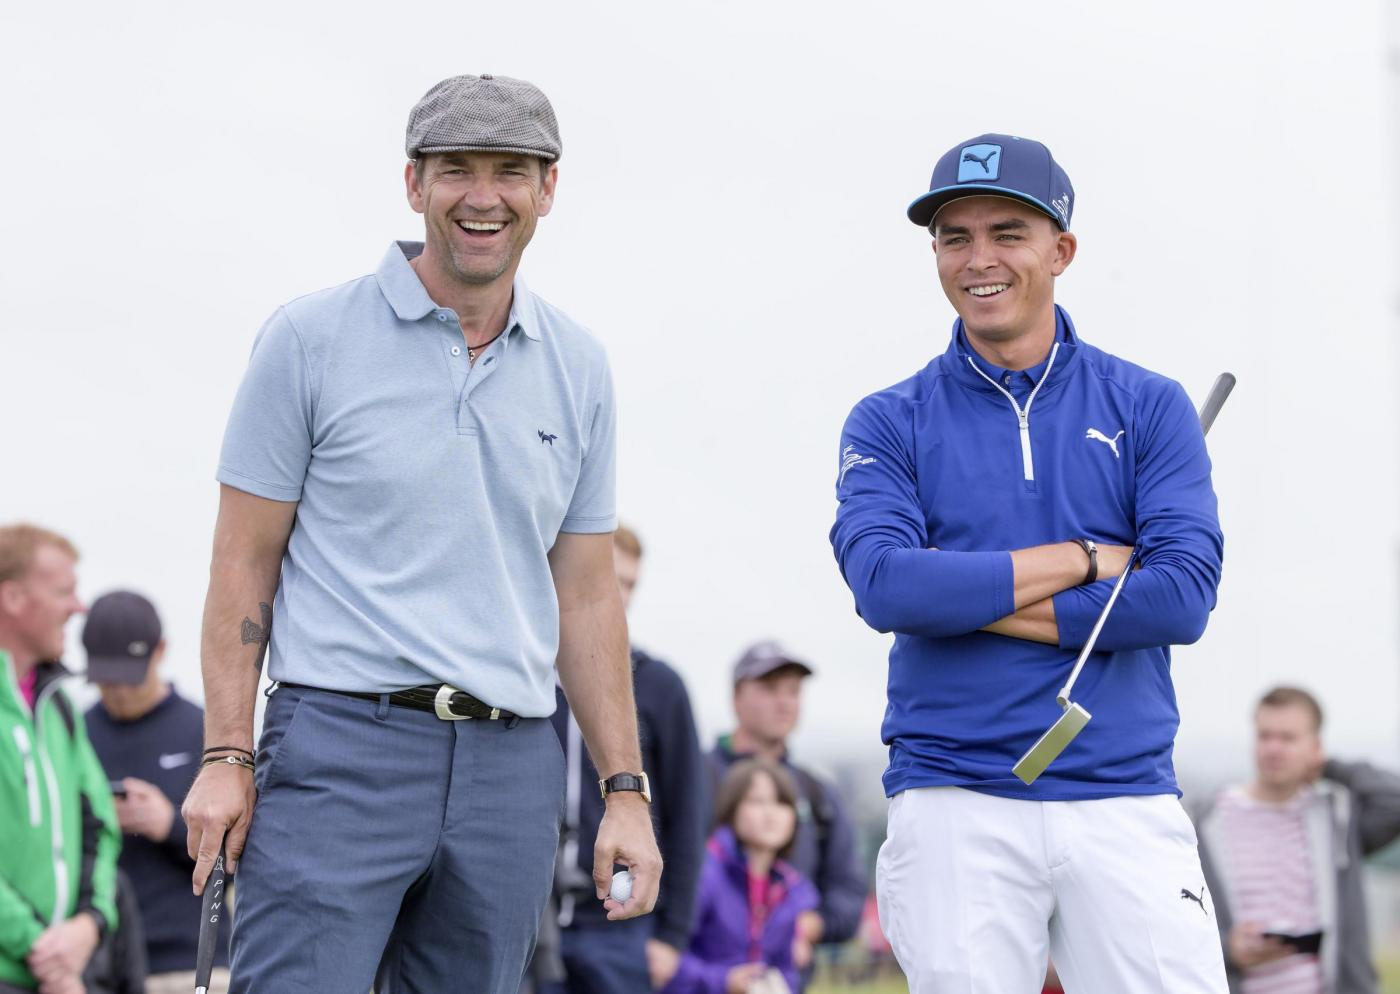 USA's Ricky Fowler (right) shares a laugh with actor Dougray Scott on the 10th tee during a preview day ahead of the Scottish Open at Gullane Golf Club, East Lothian. PRESS ASSOCIATION Photo. Picture date: Wednesday July 8, 2015. See PA story GOLF Gullane. Photo credit should read: Kenny Smith/PA Wire. RESTRICTIONS: Editorial use only. No commercial use. No false commercial association. No video emulation. No manipulation of images.